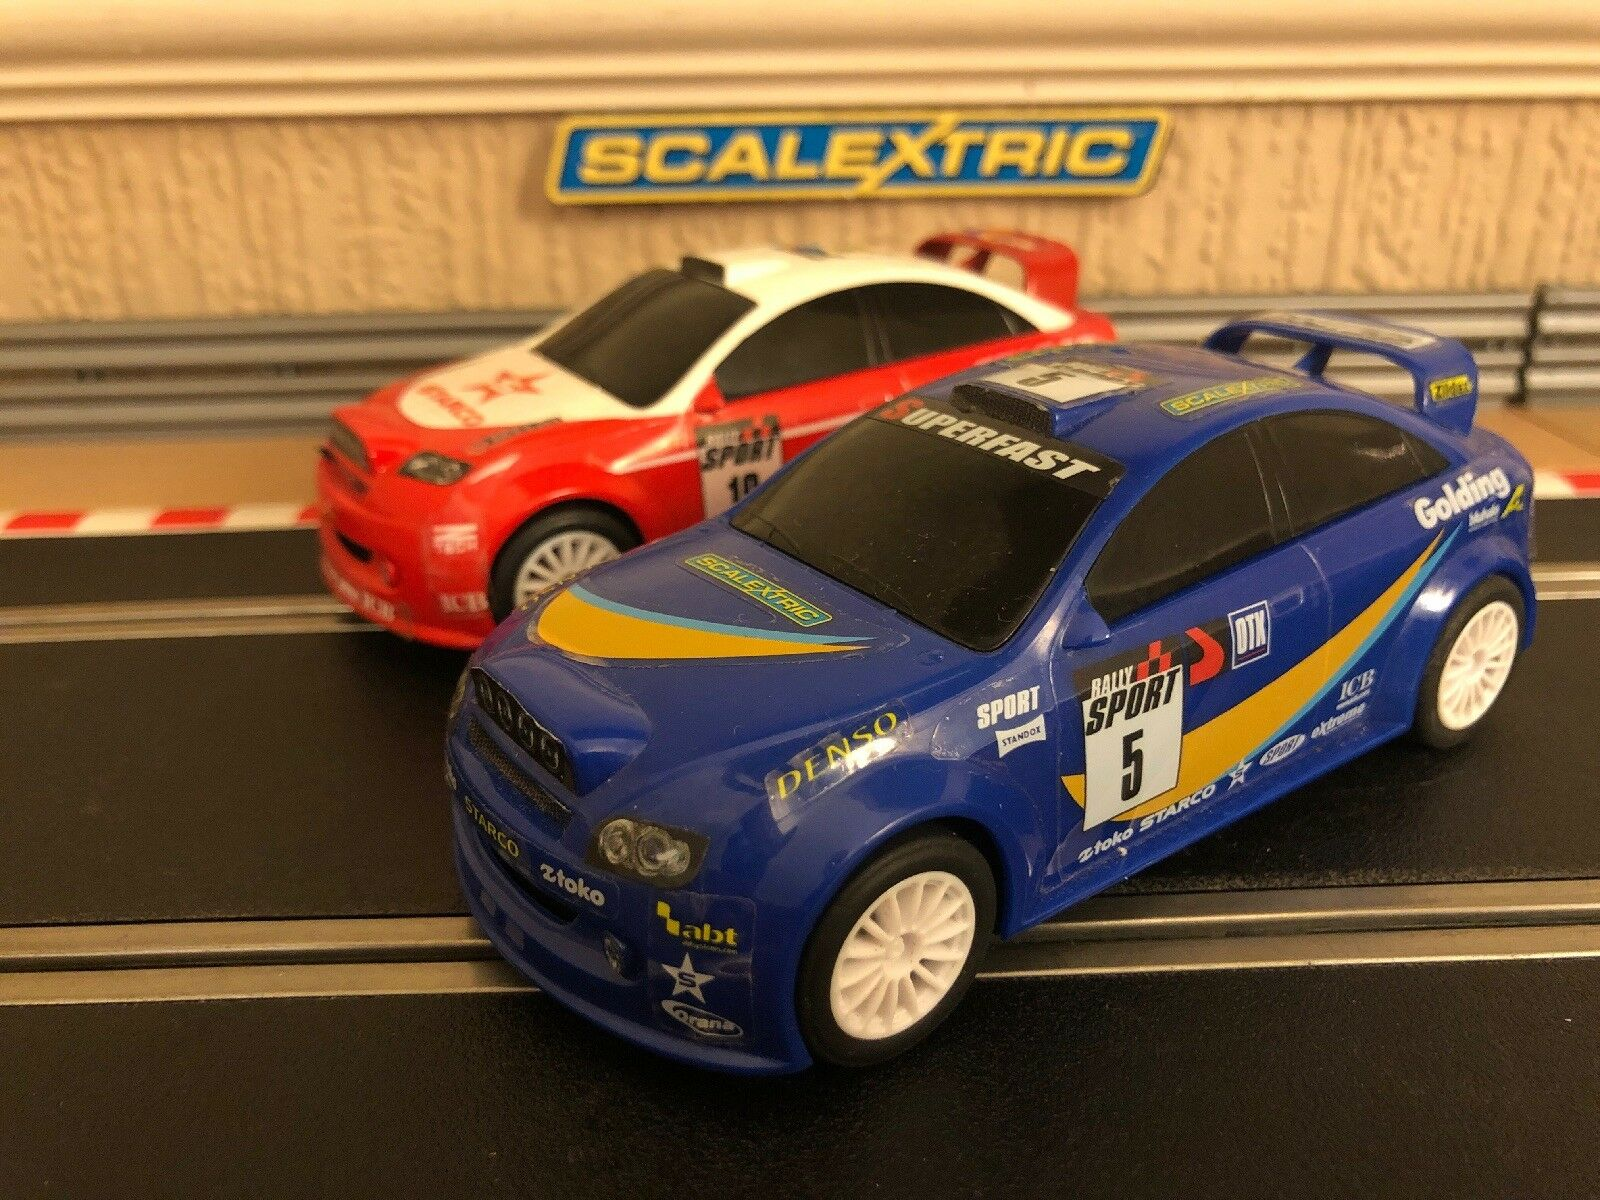 Scalextric Rally Cars x2 All Fully Serviced & New Braids Fitted VGC